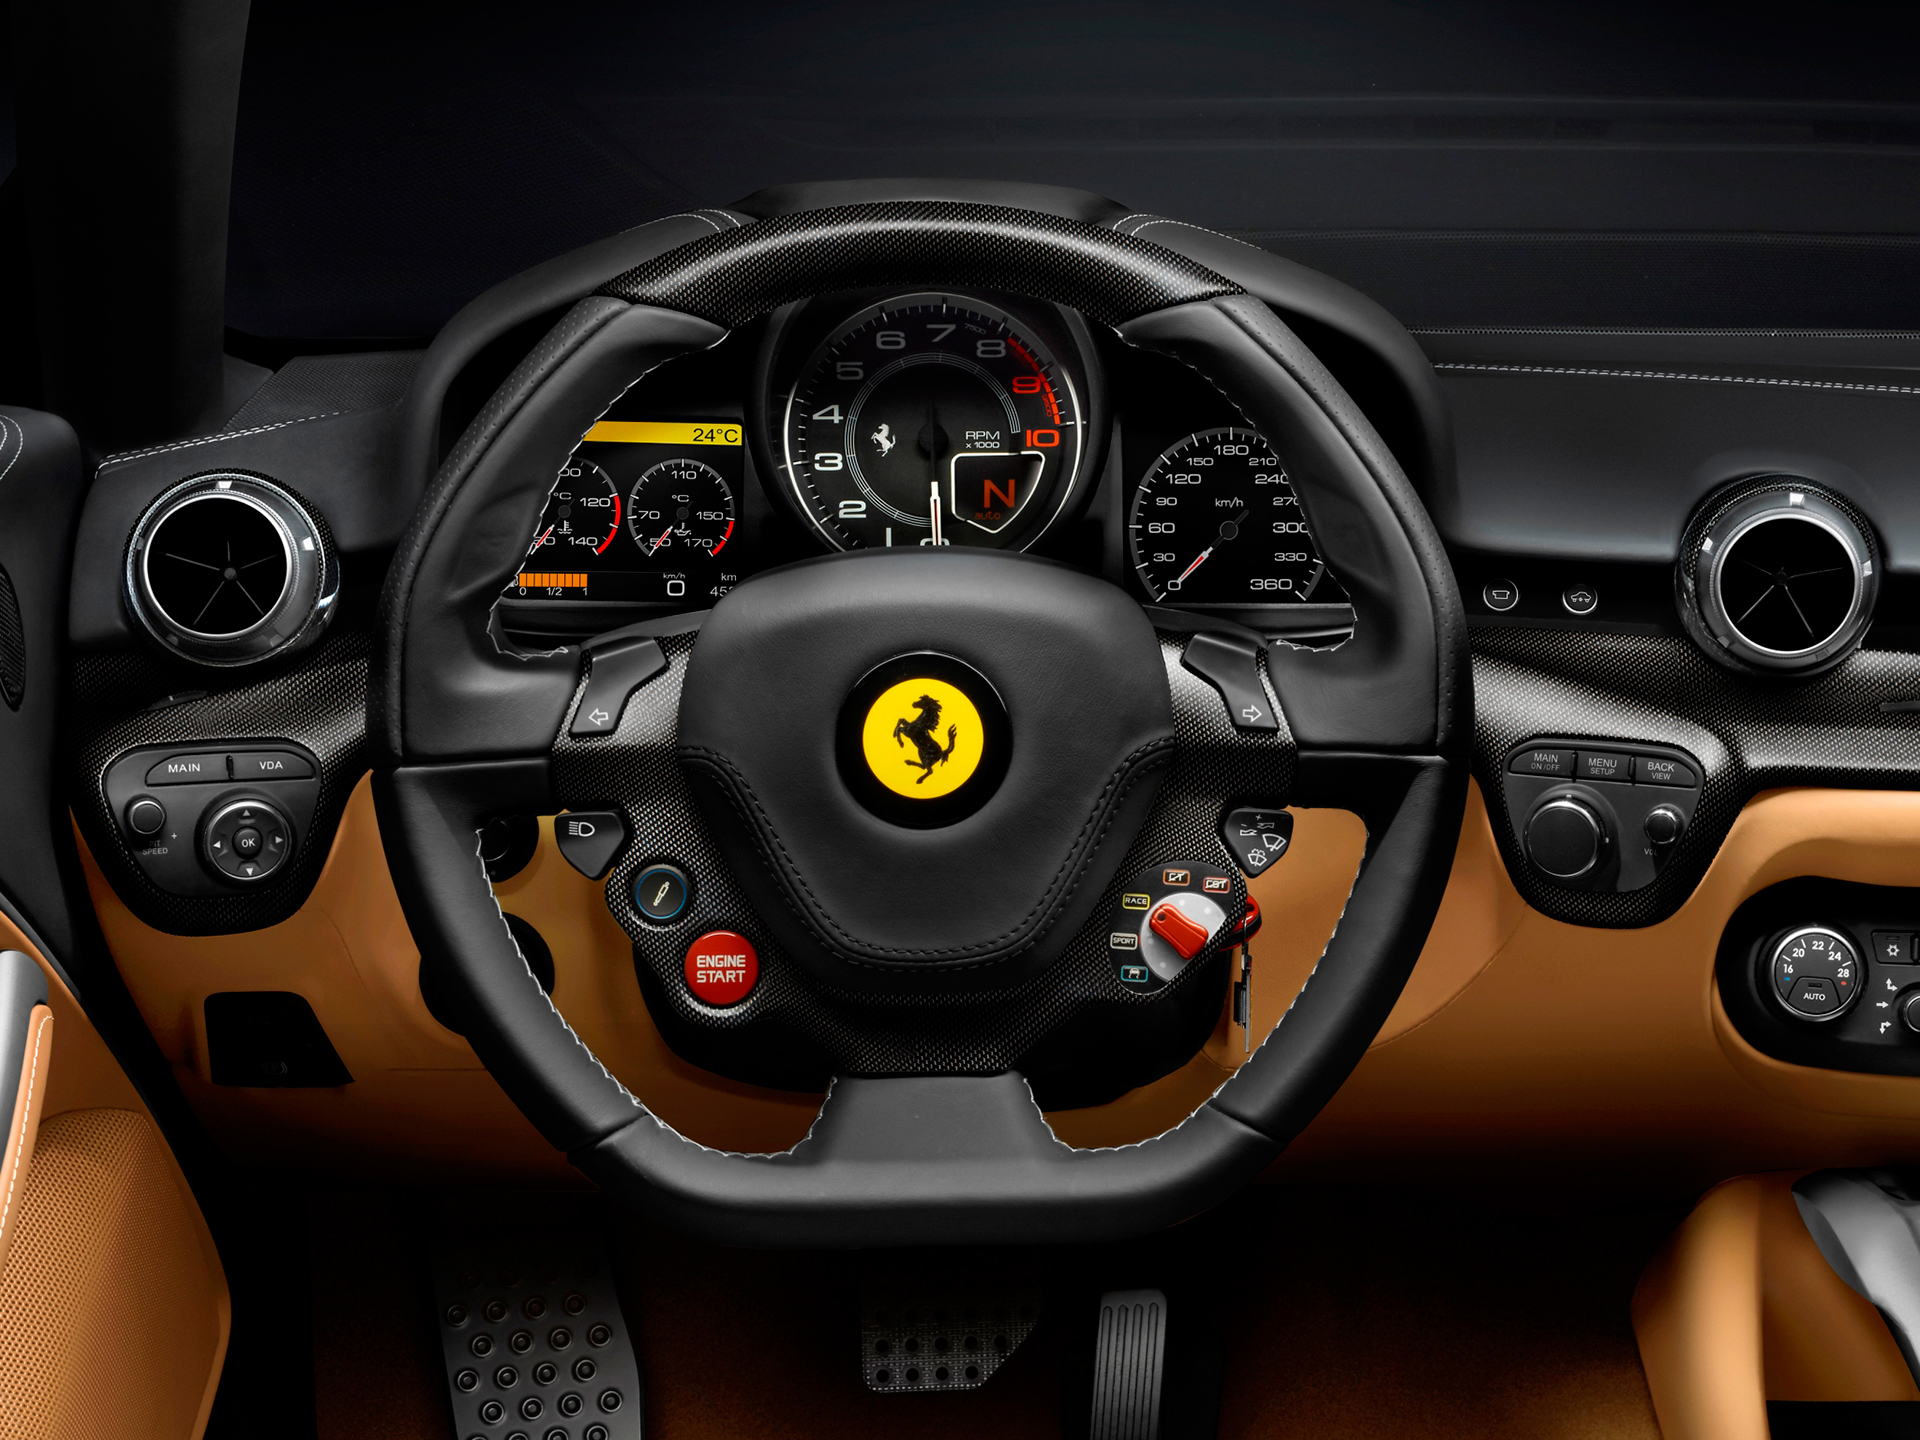 Ferrari F12berlinetta - volant / racing wheel